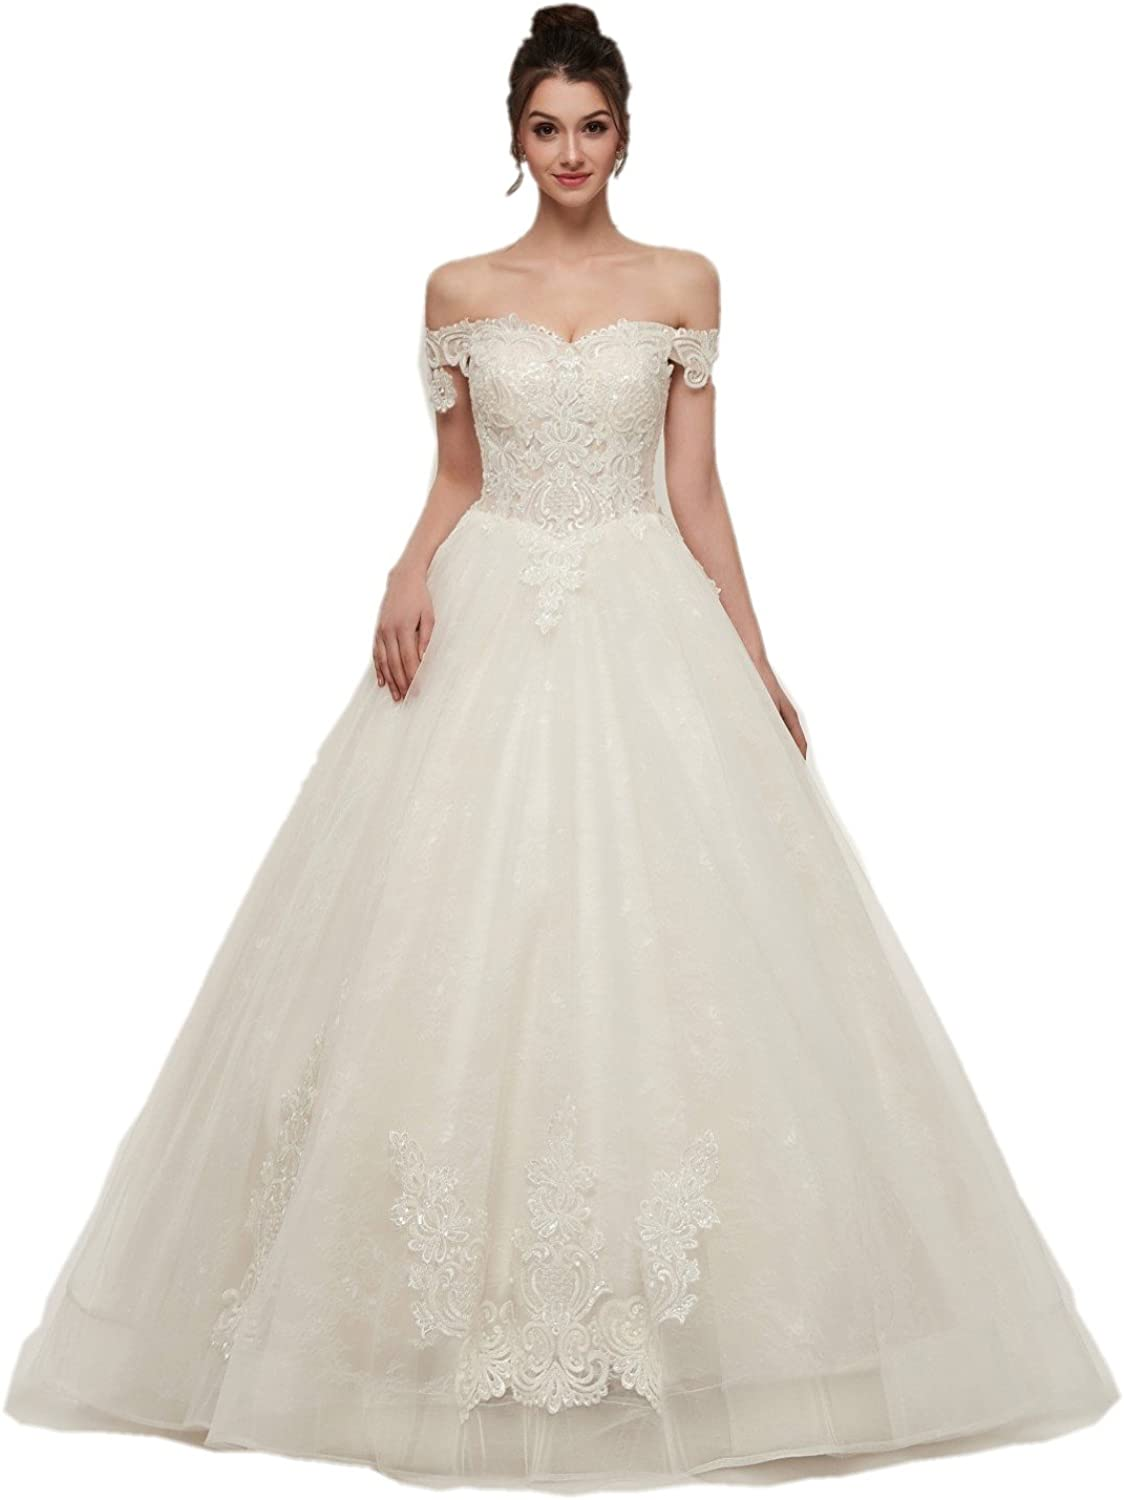 Darcy74Dulles Women's Elegant Embroidery Wedding Dress Sexy OffShouder Wedding Gown